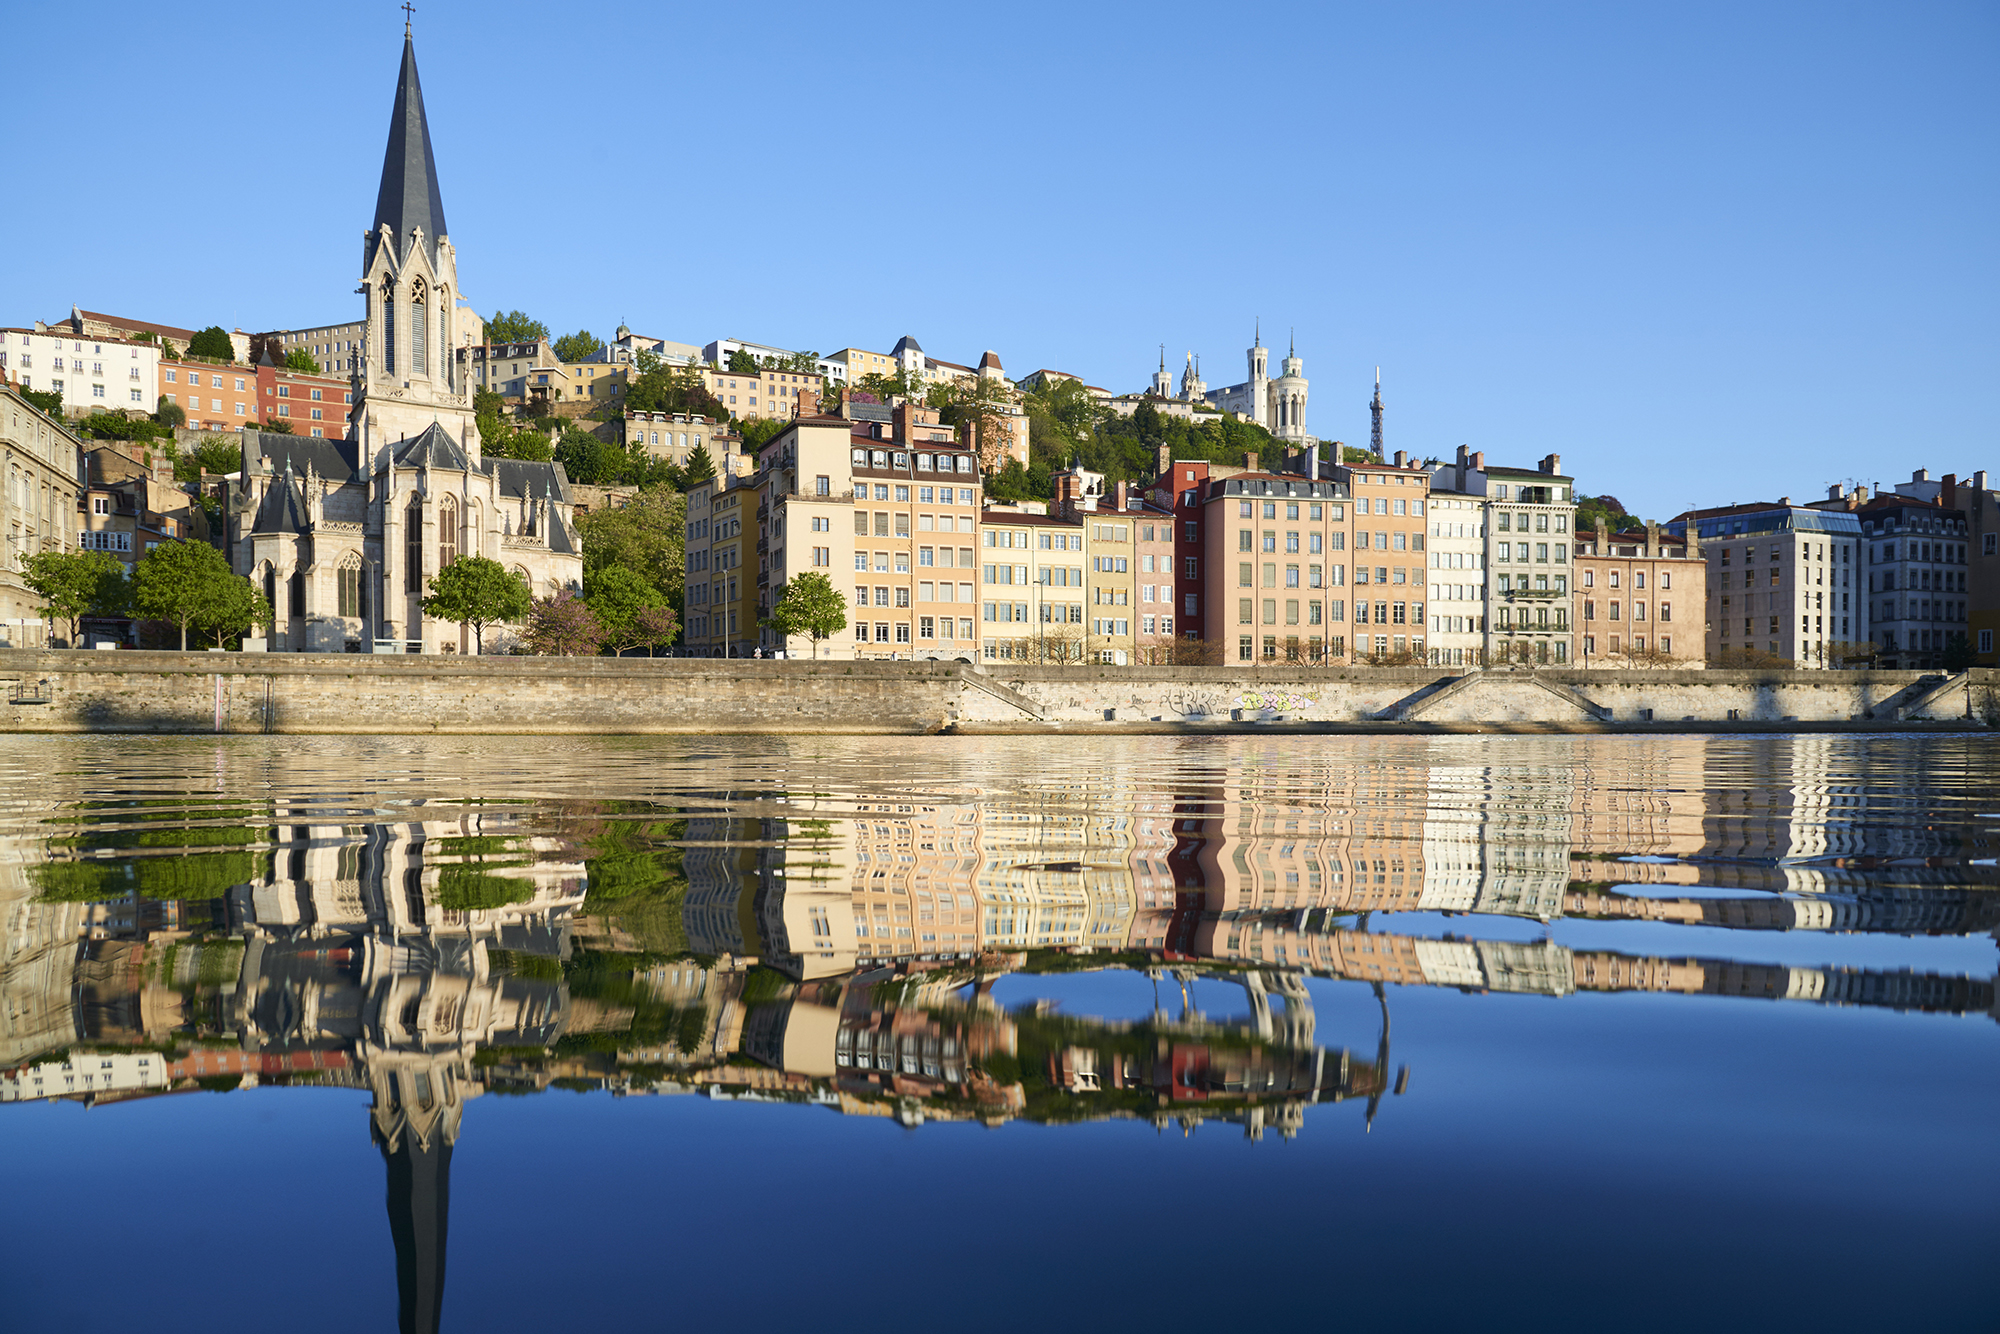 Plan Your Dream Vacation in Bourdeaux with Ama Waterways